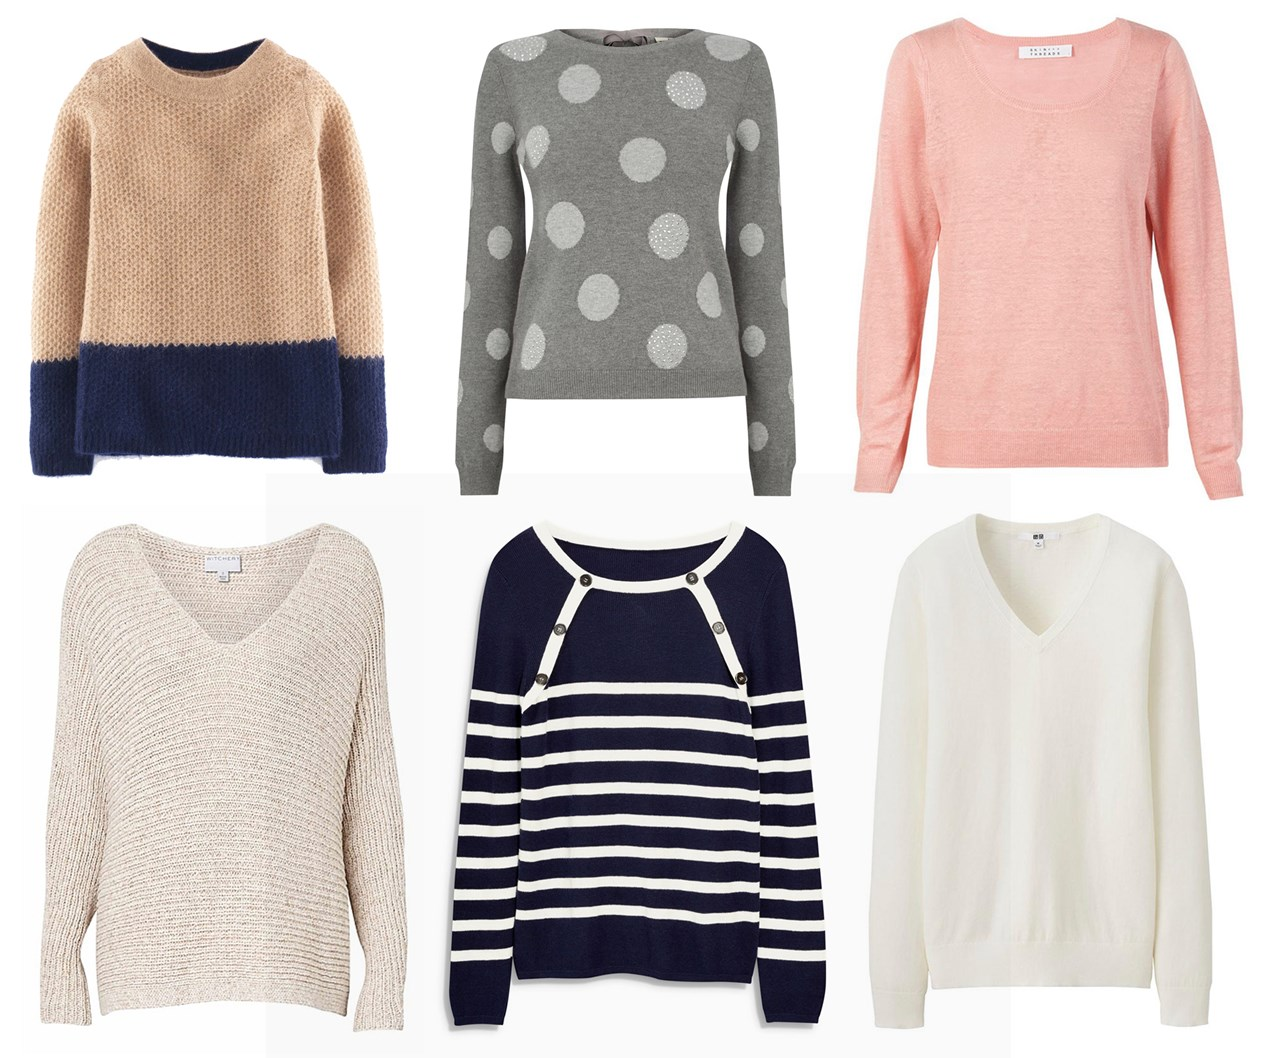 The best light sweaters for Spring